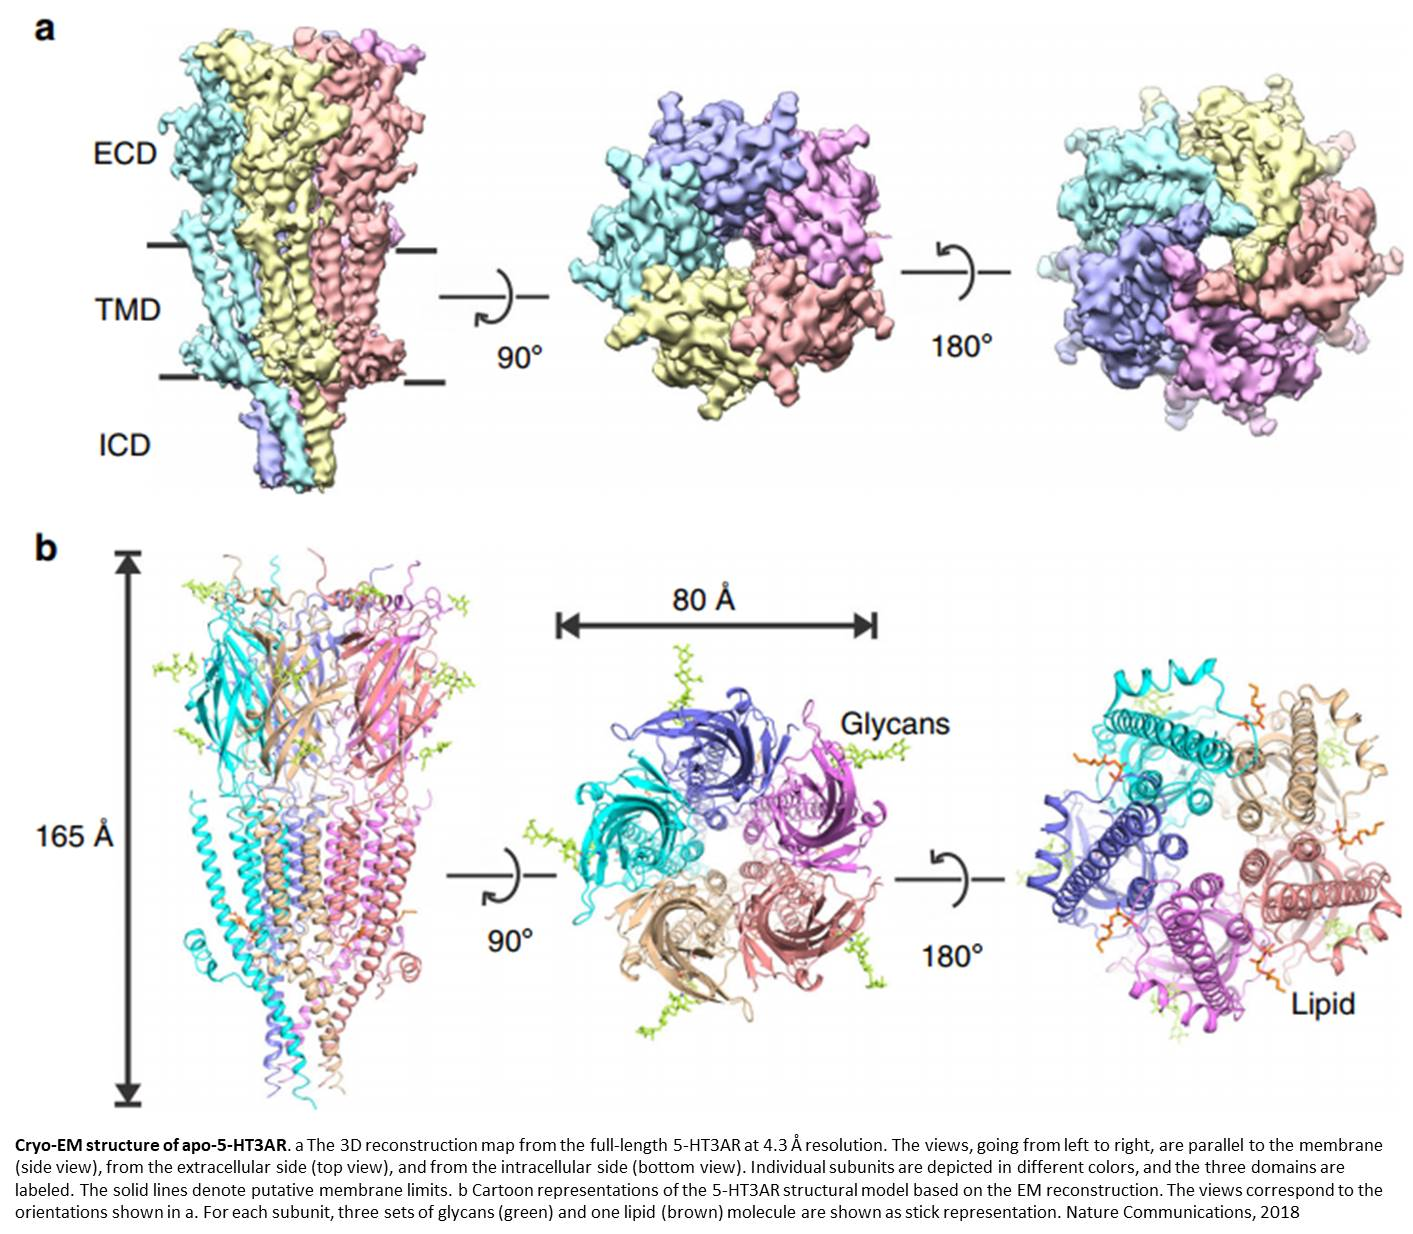 Cryo-EM structure of full length serotonin receptor